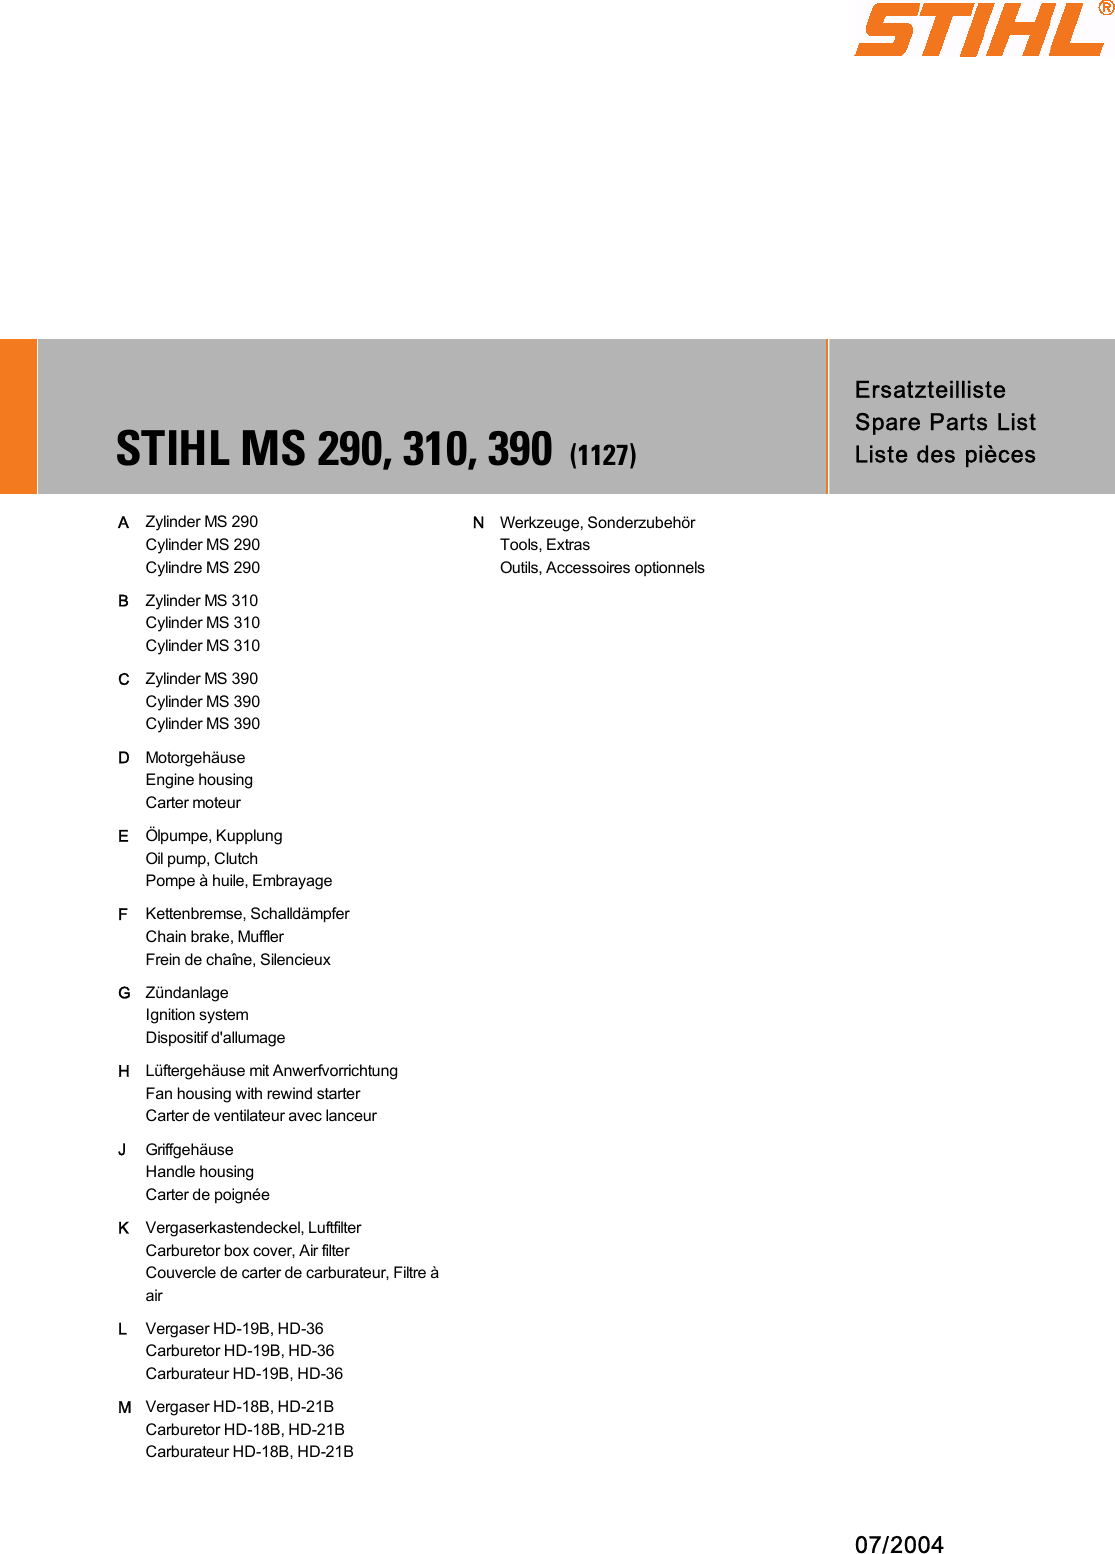 hight resolution of stihl ms 290 farm boss parts list manualslib makes it easy to find manuals online